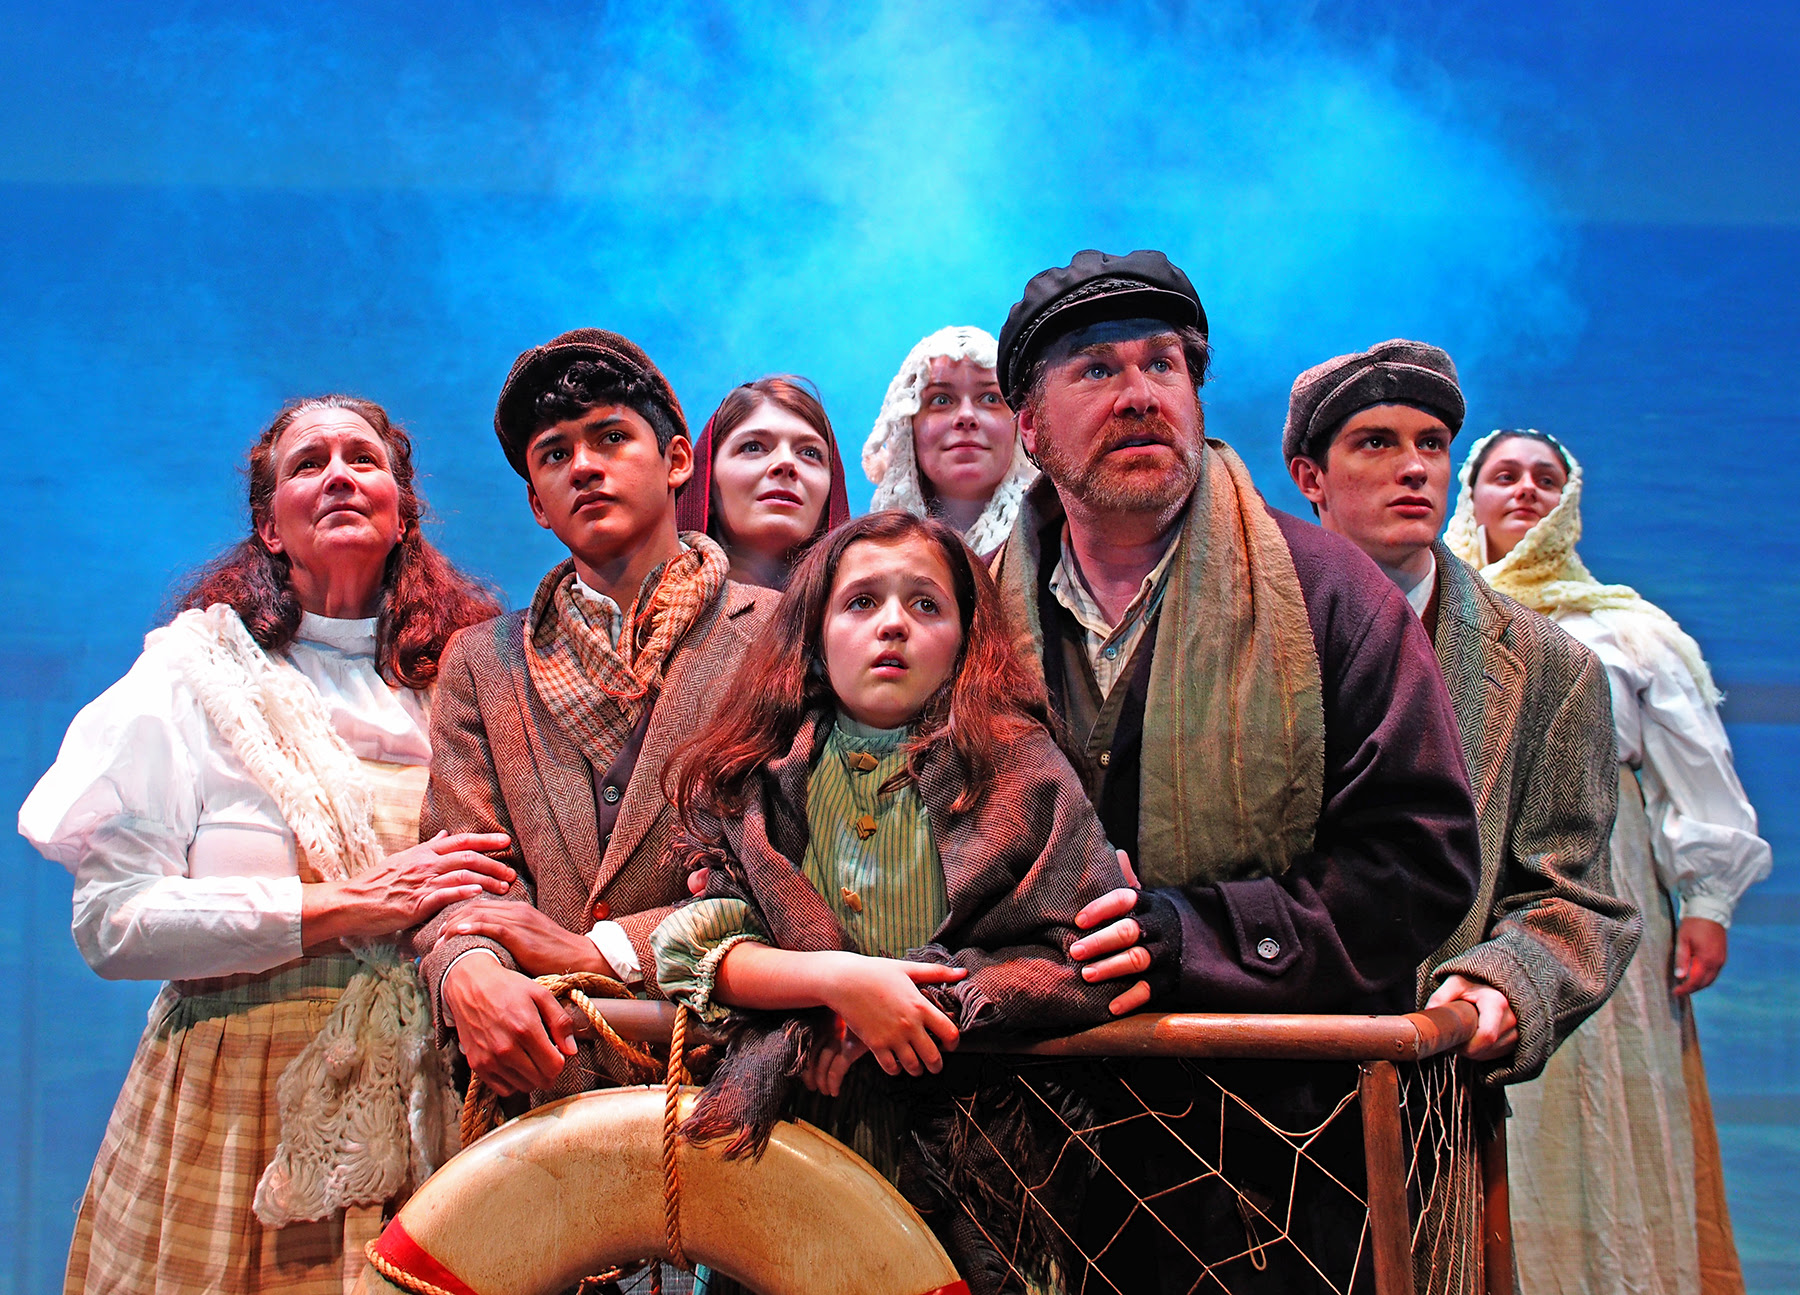 Barbara Baumgarten, Cristian Sack, Hilary Goodnow, Brenna Kenney, Finn Clougherty, JillianGriffin, with Hannah Dwyer as Little Girl and Michael Hammond as Tateh